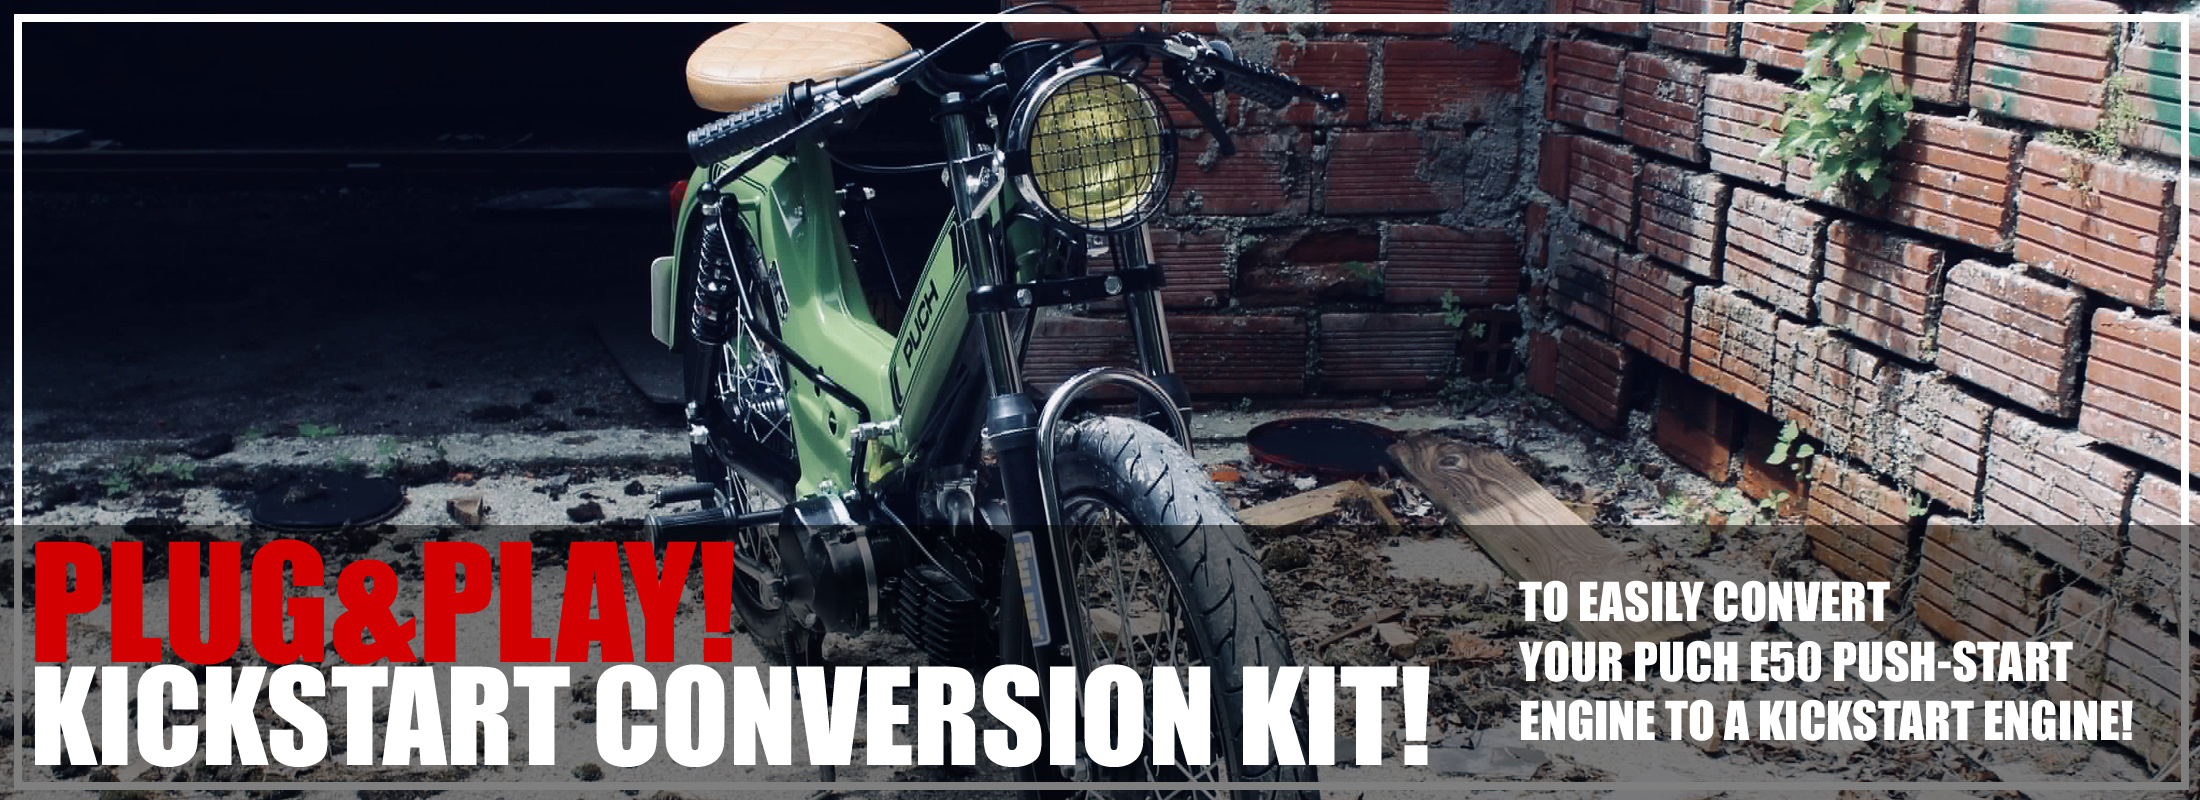 kickstart conversion kit